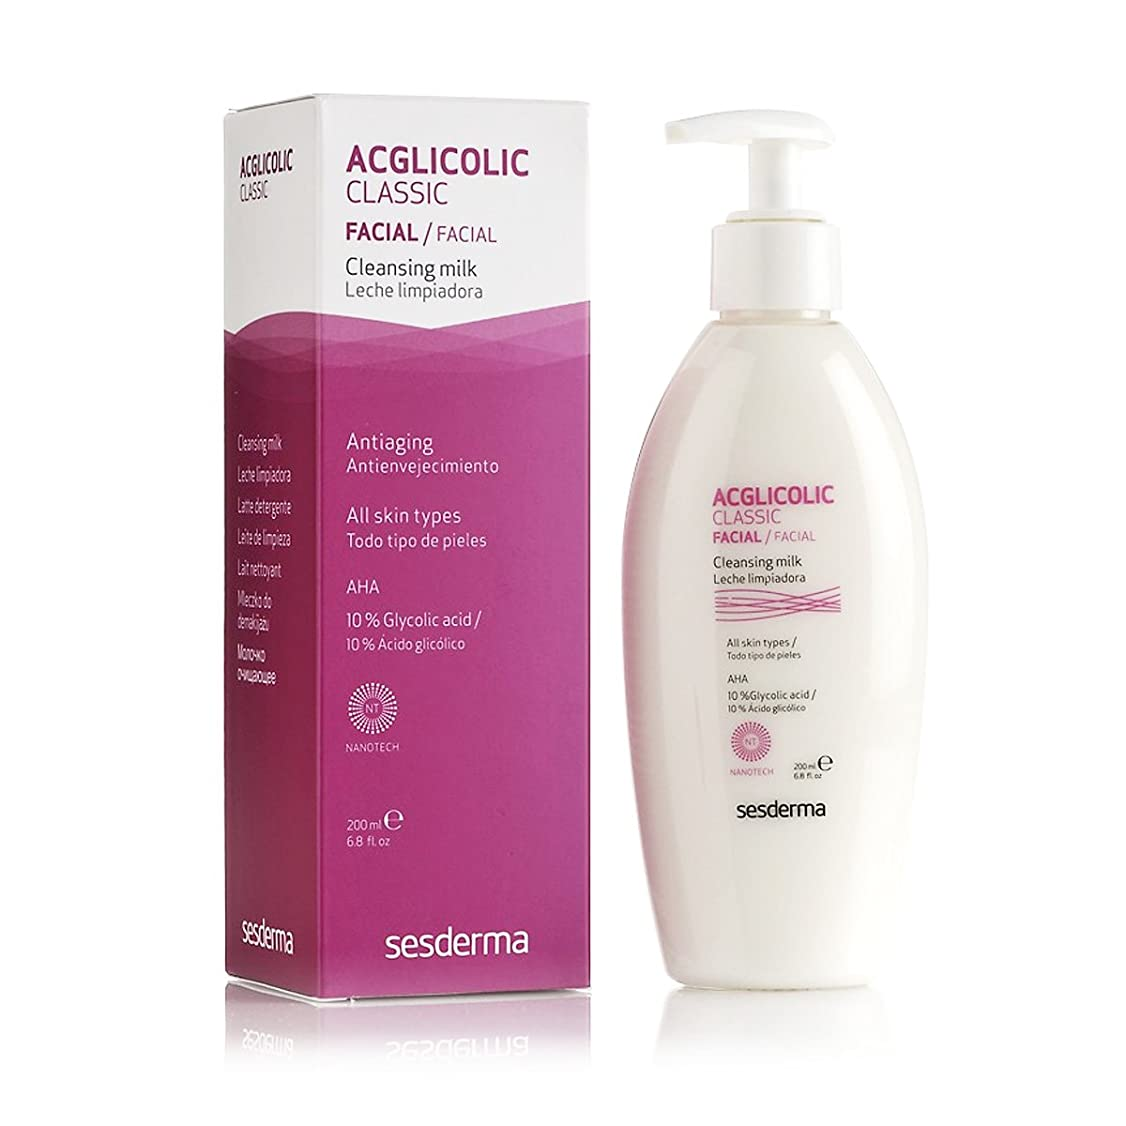 ビュッフェ土器社説Sesderma Acglicolic Classic Cleansing Milk 200ml [並行輸入品]